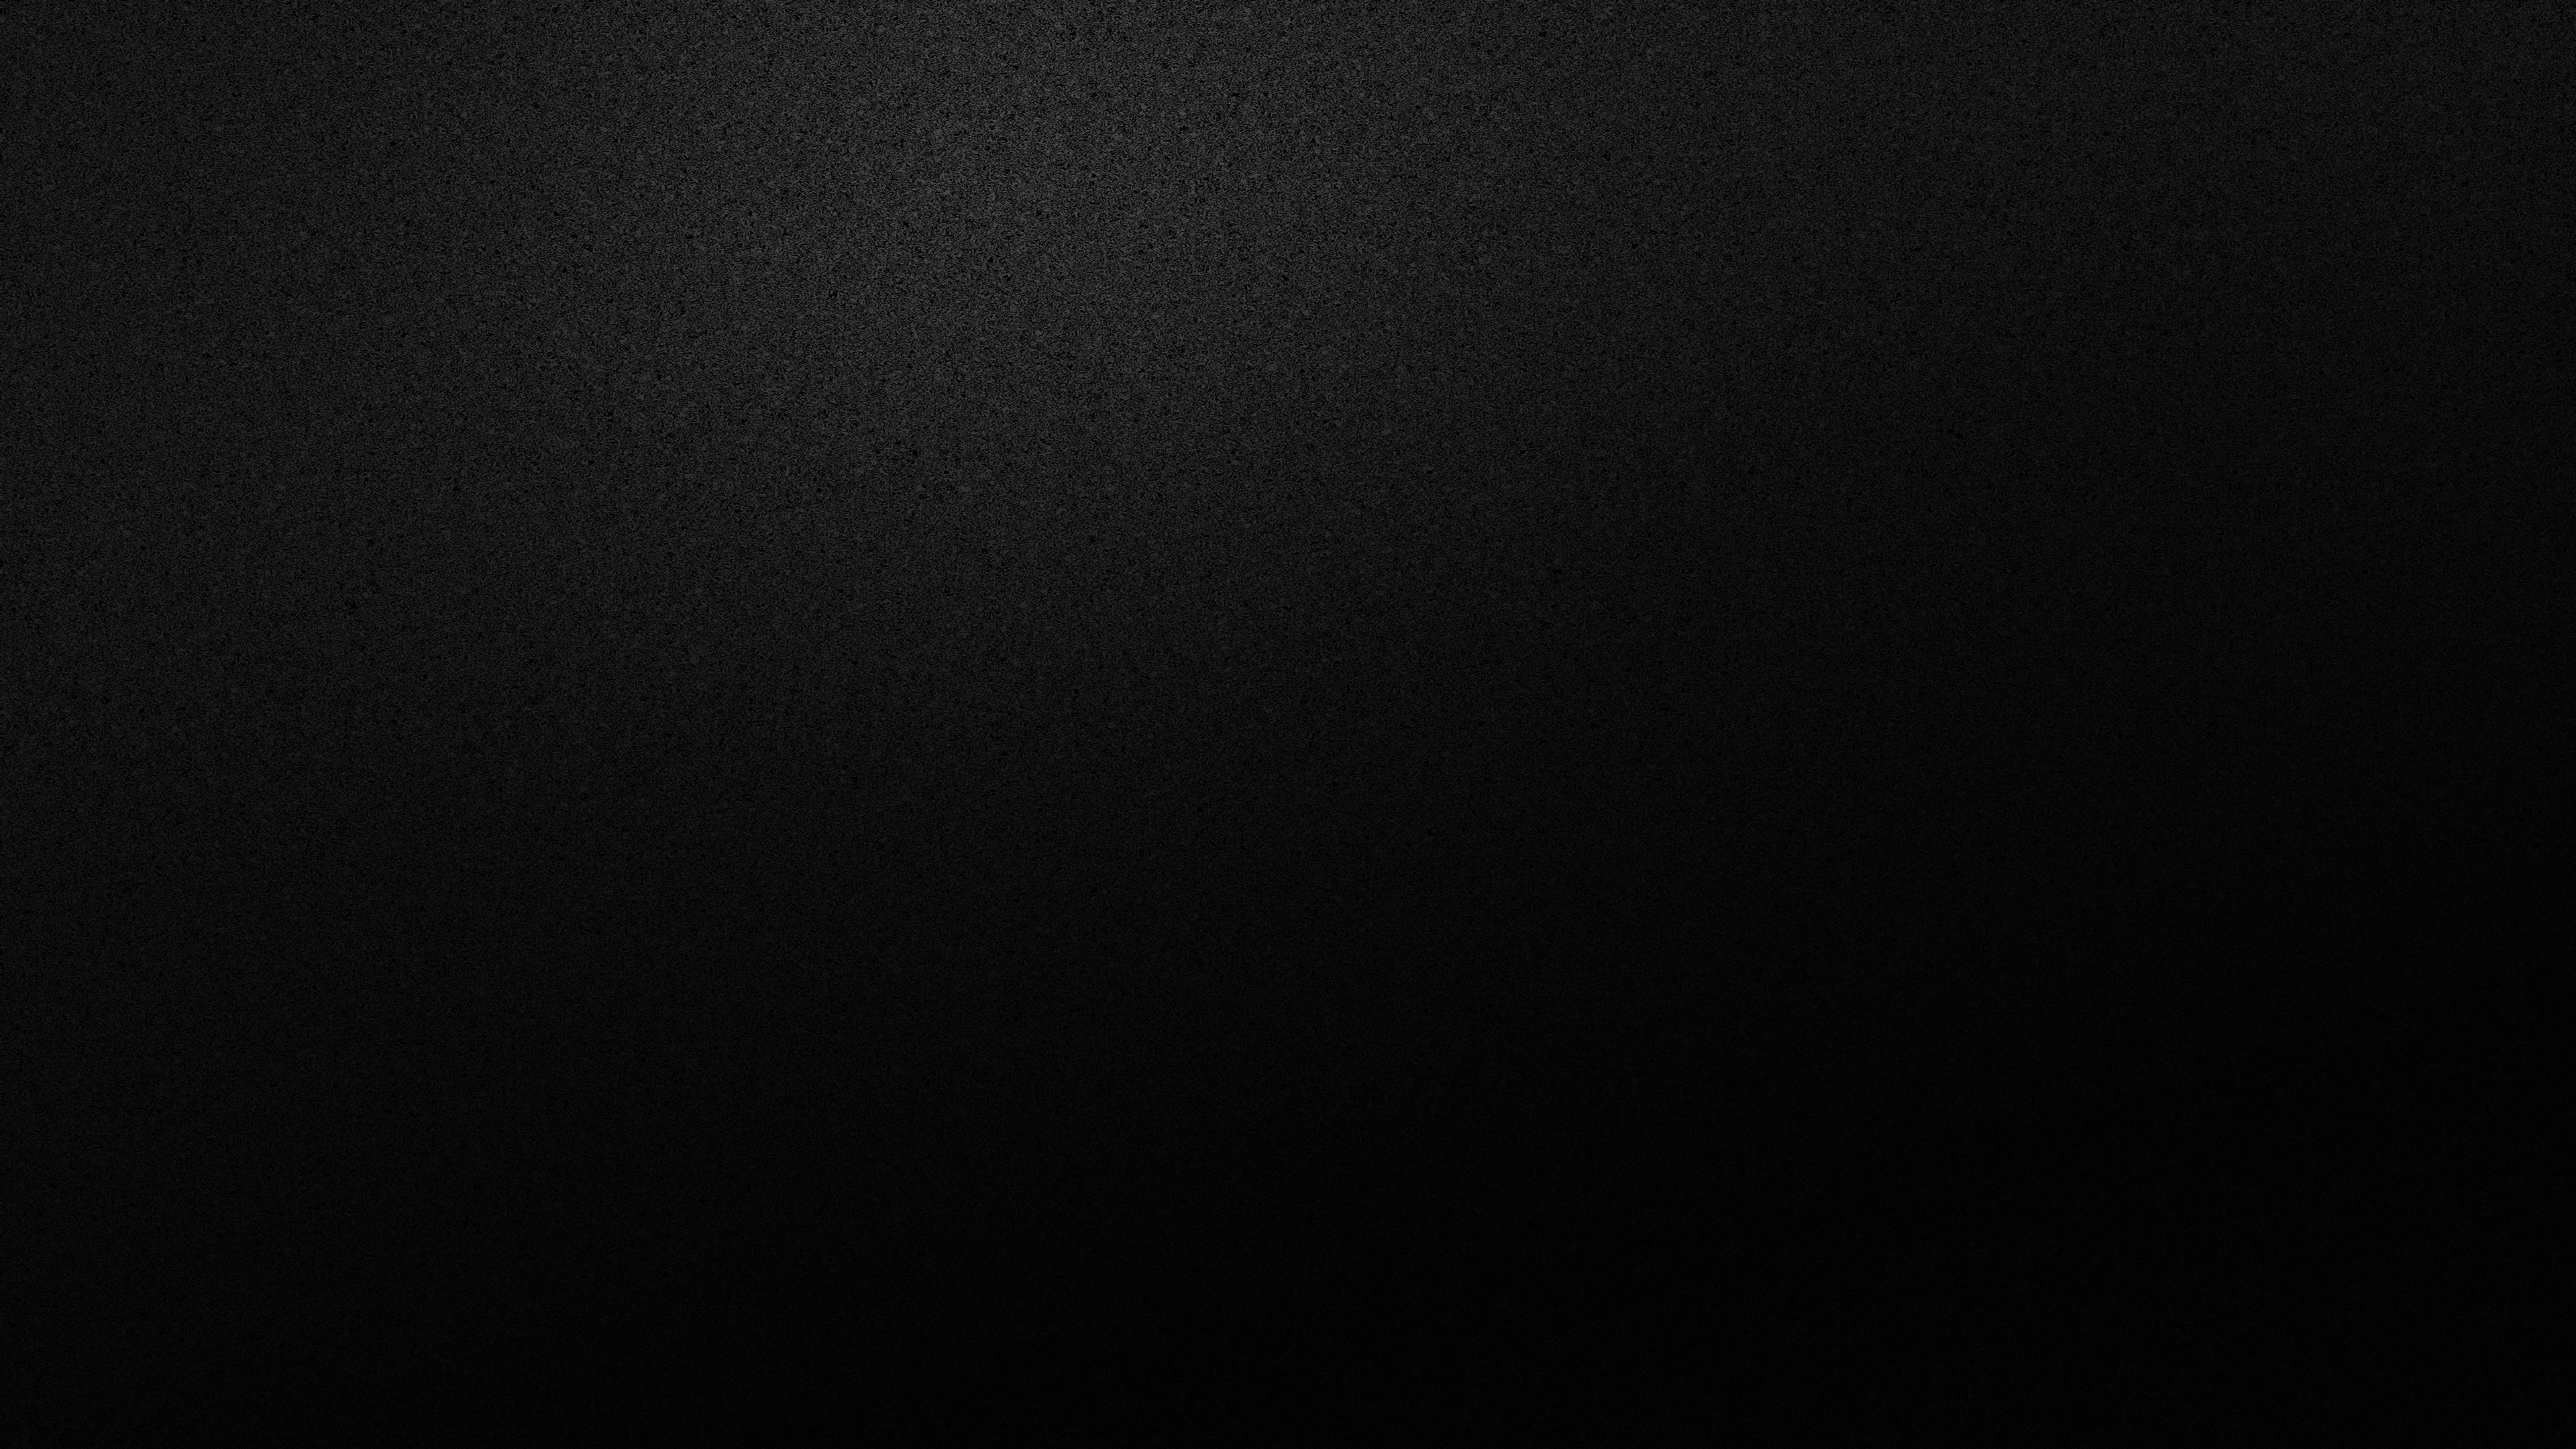 Black Texture Background Wallpaper [HD] By Deddyrap On